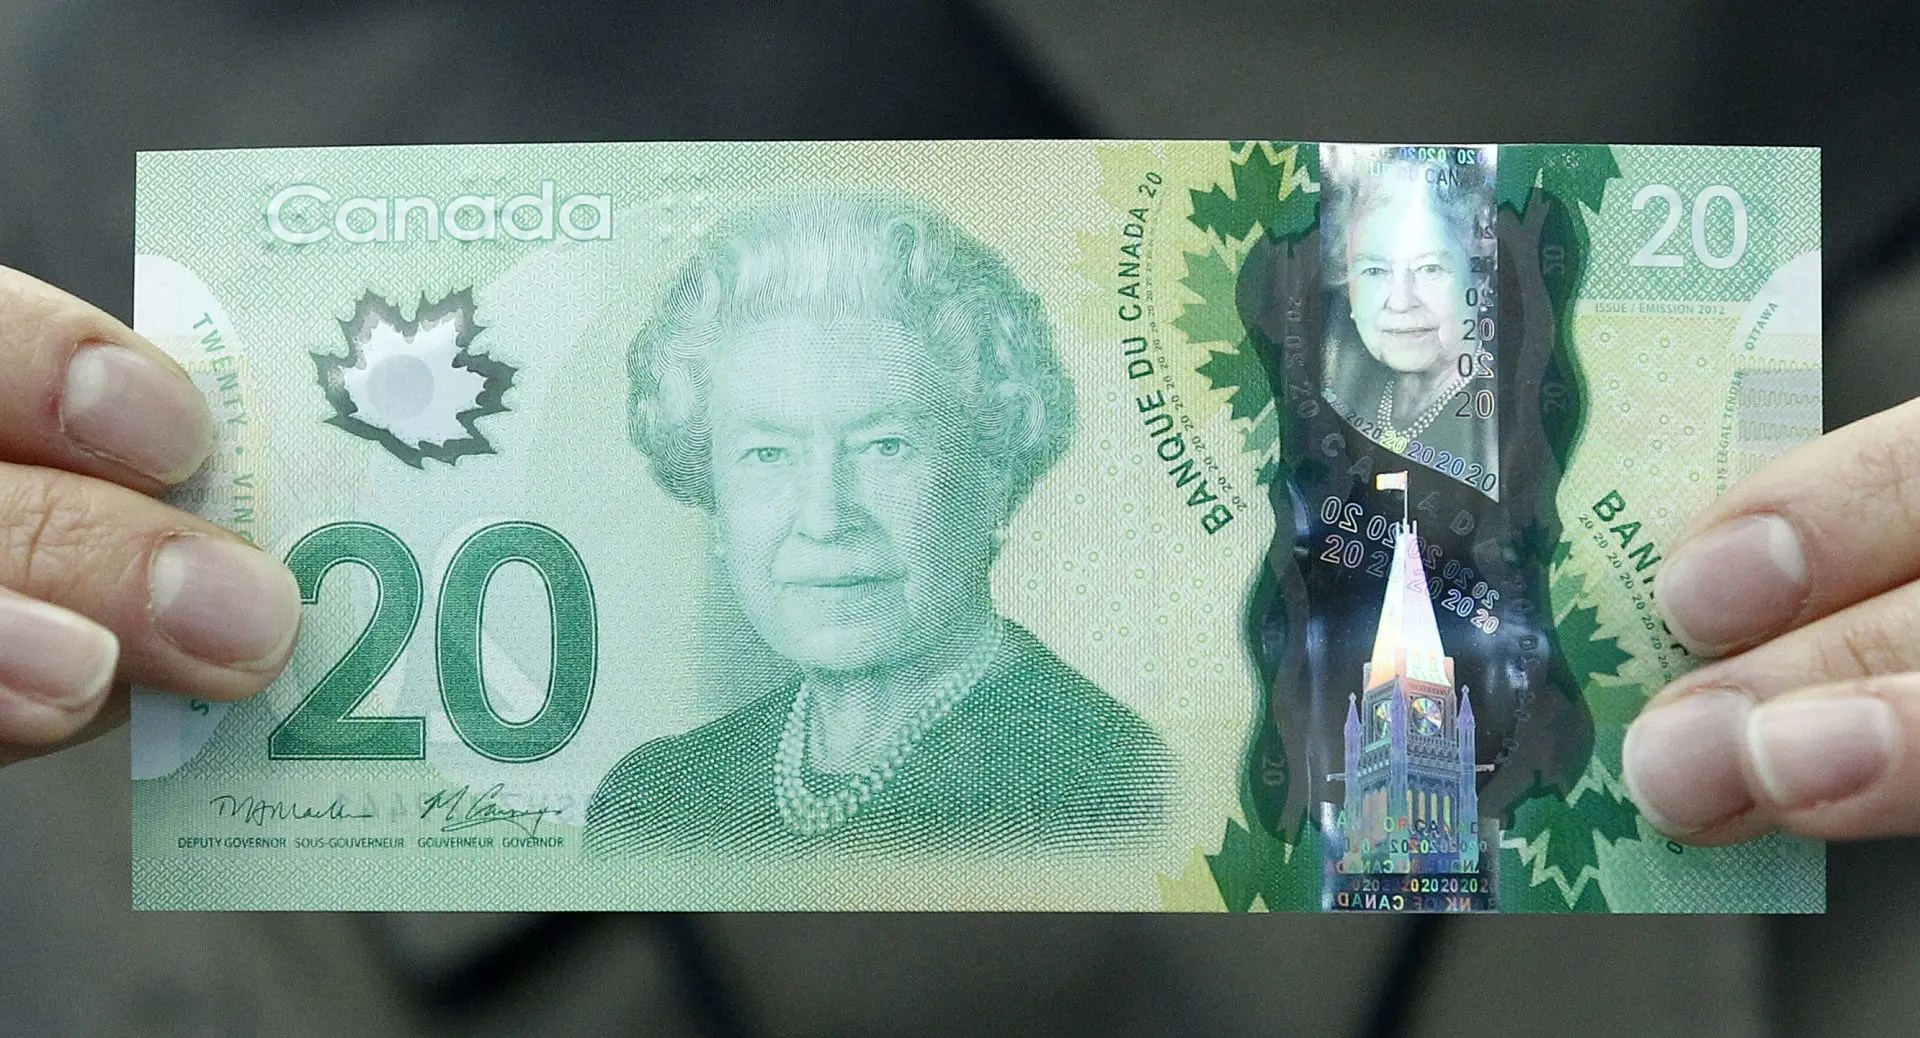 Canadian $20